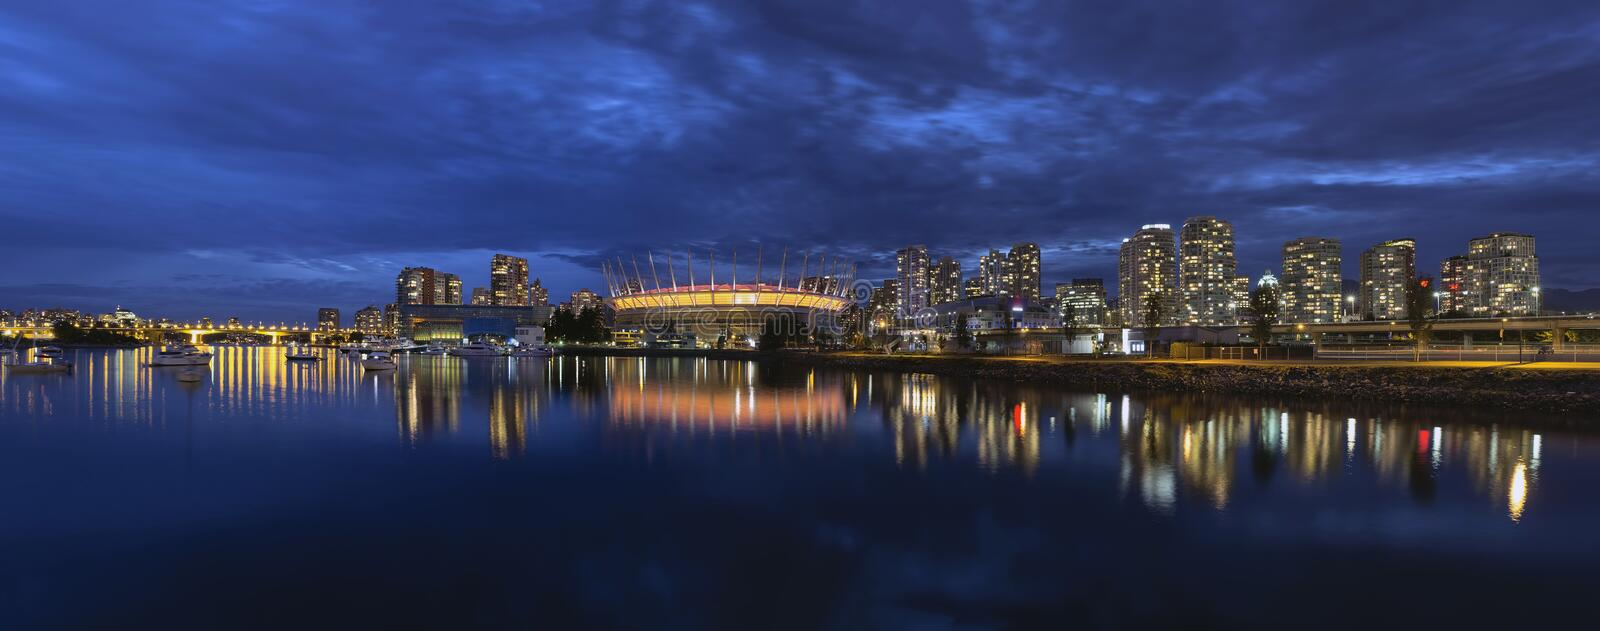 Vancouver BC Canada Skyline by False Creek at Blue Hour royalty free stock photography